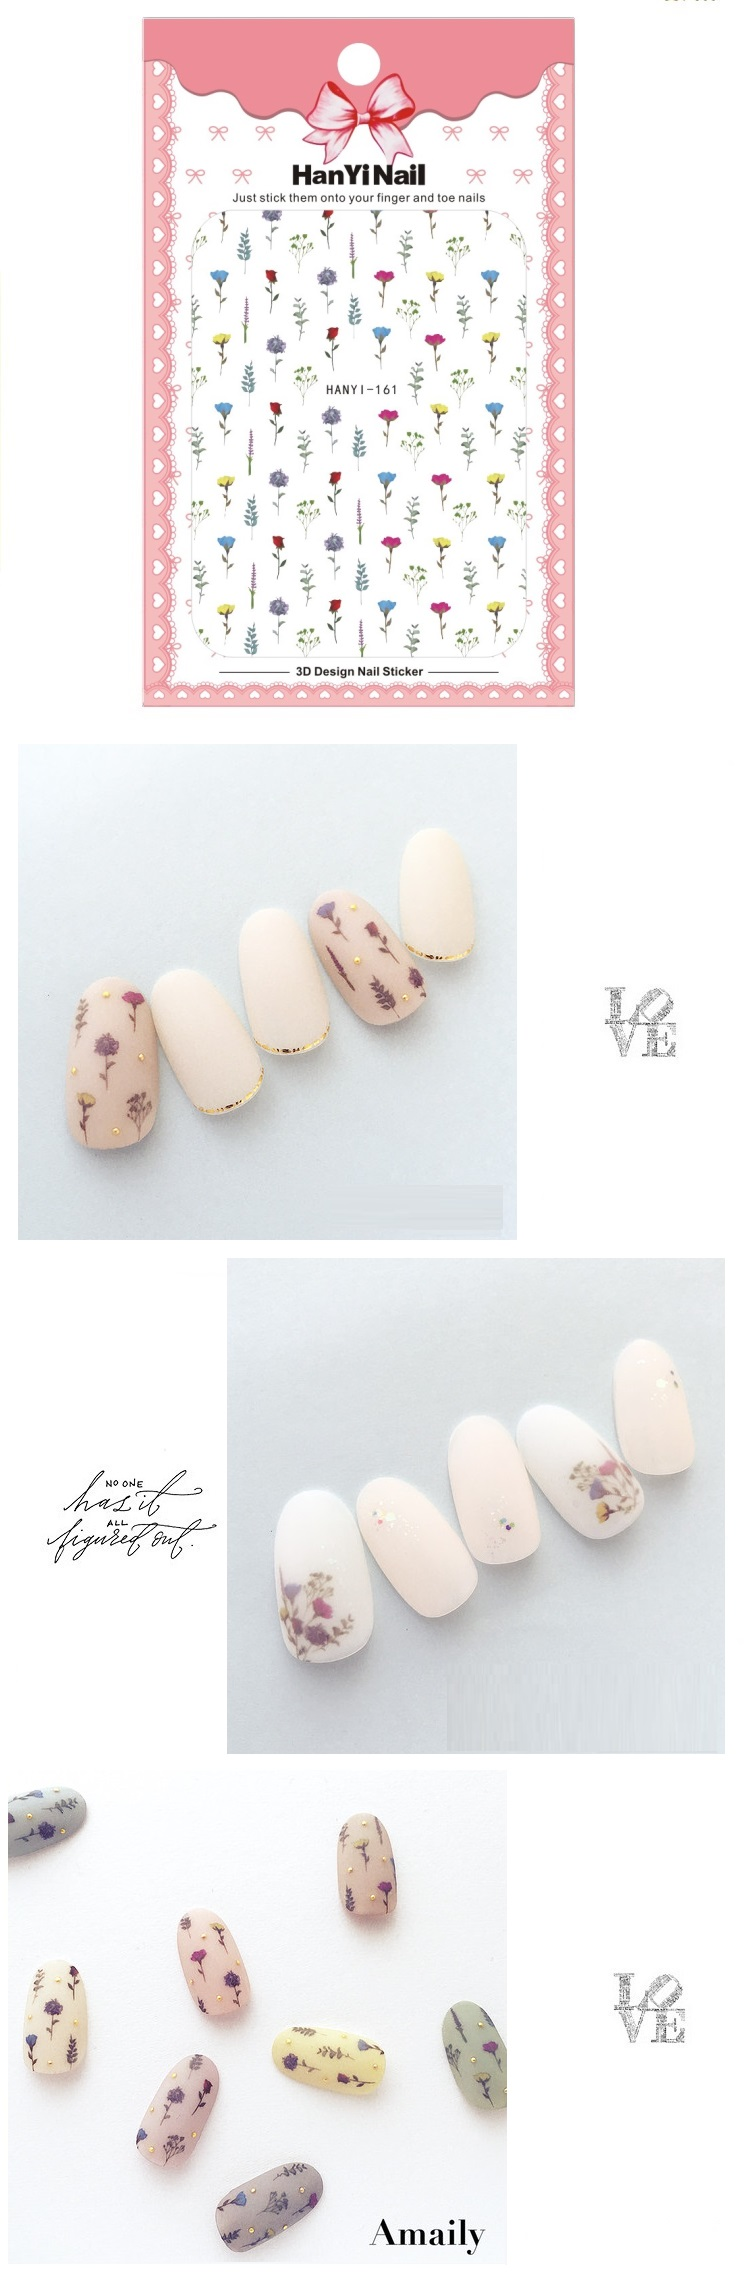 Decal decorations design nail sticker for nails tips beauty hanyi161